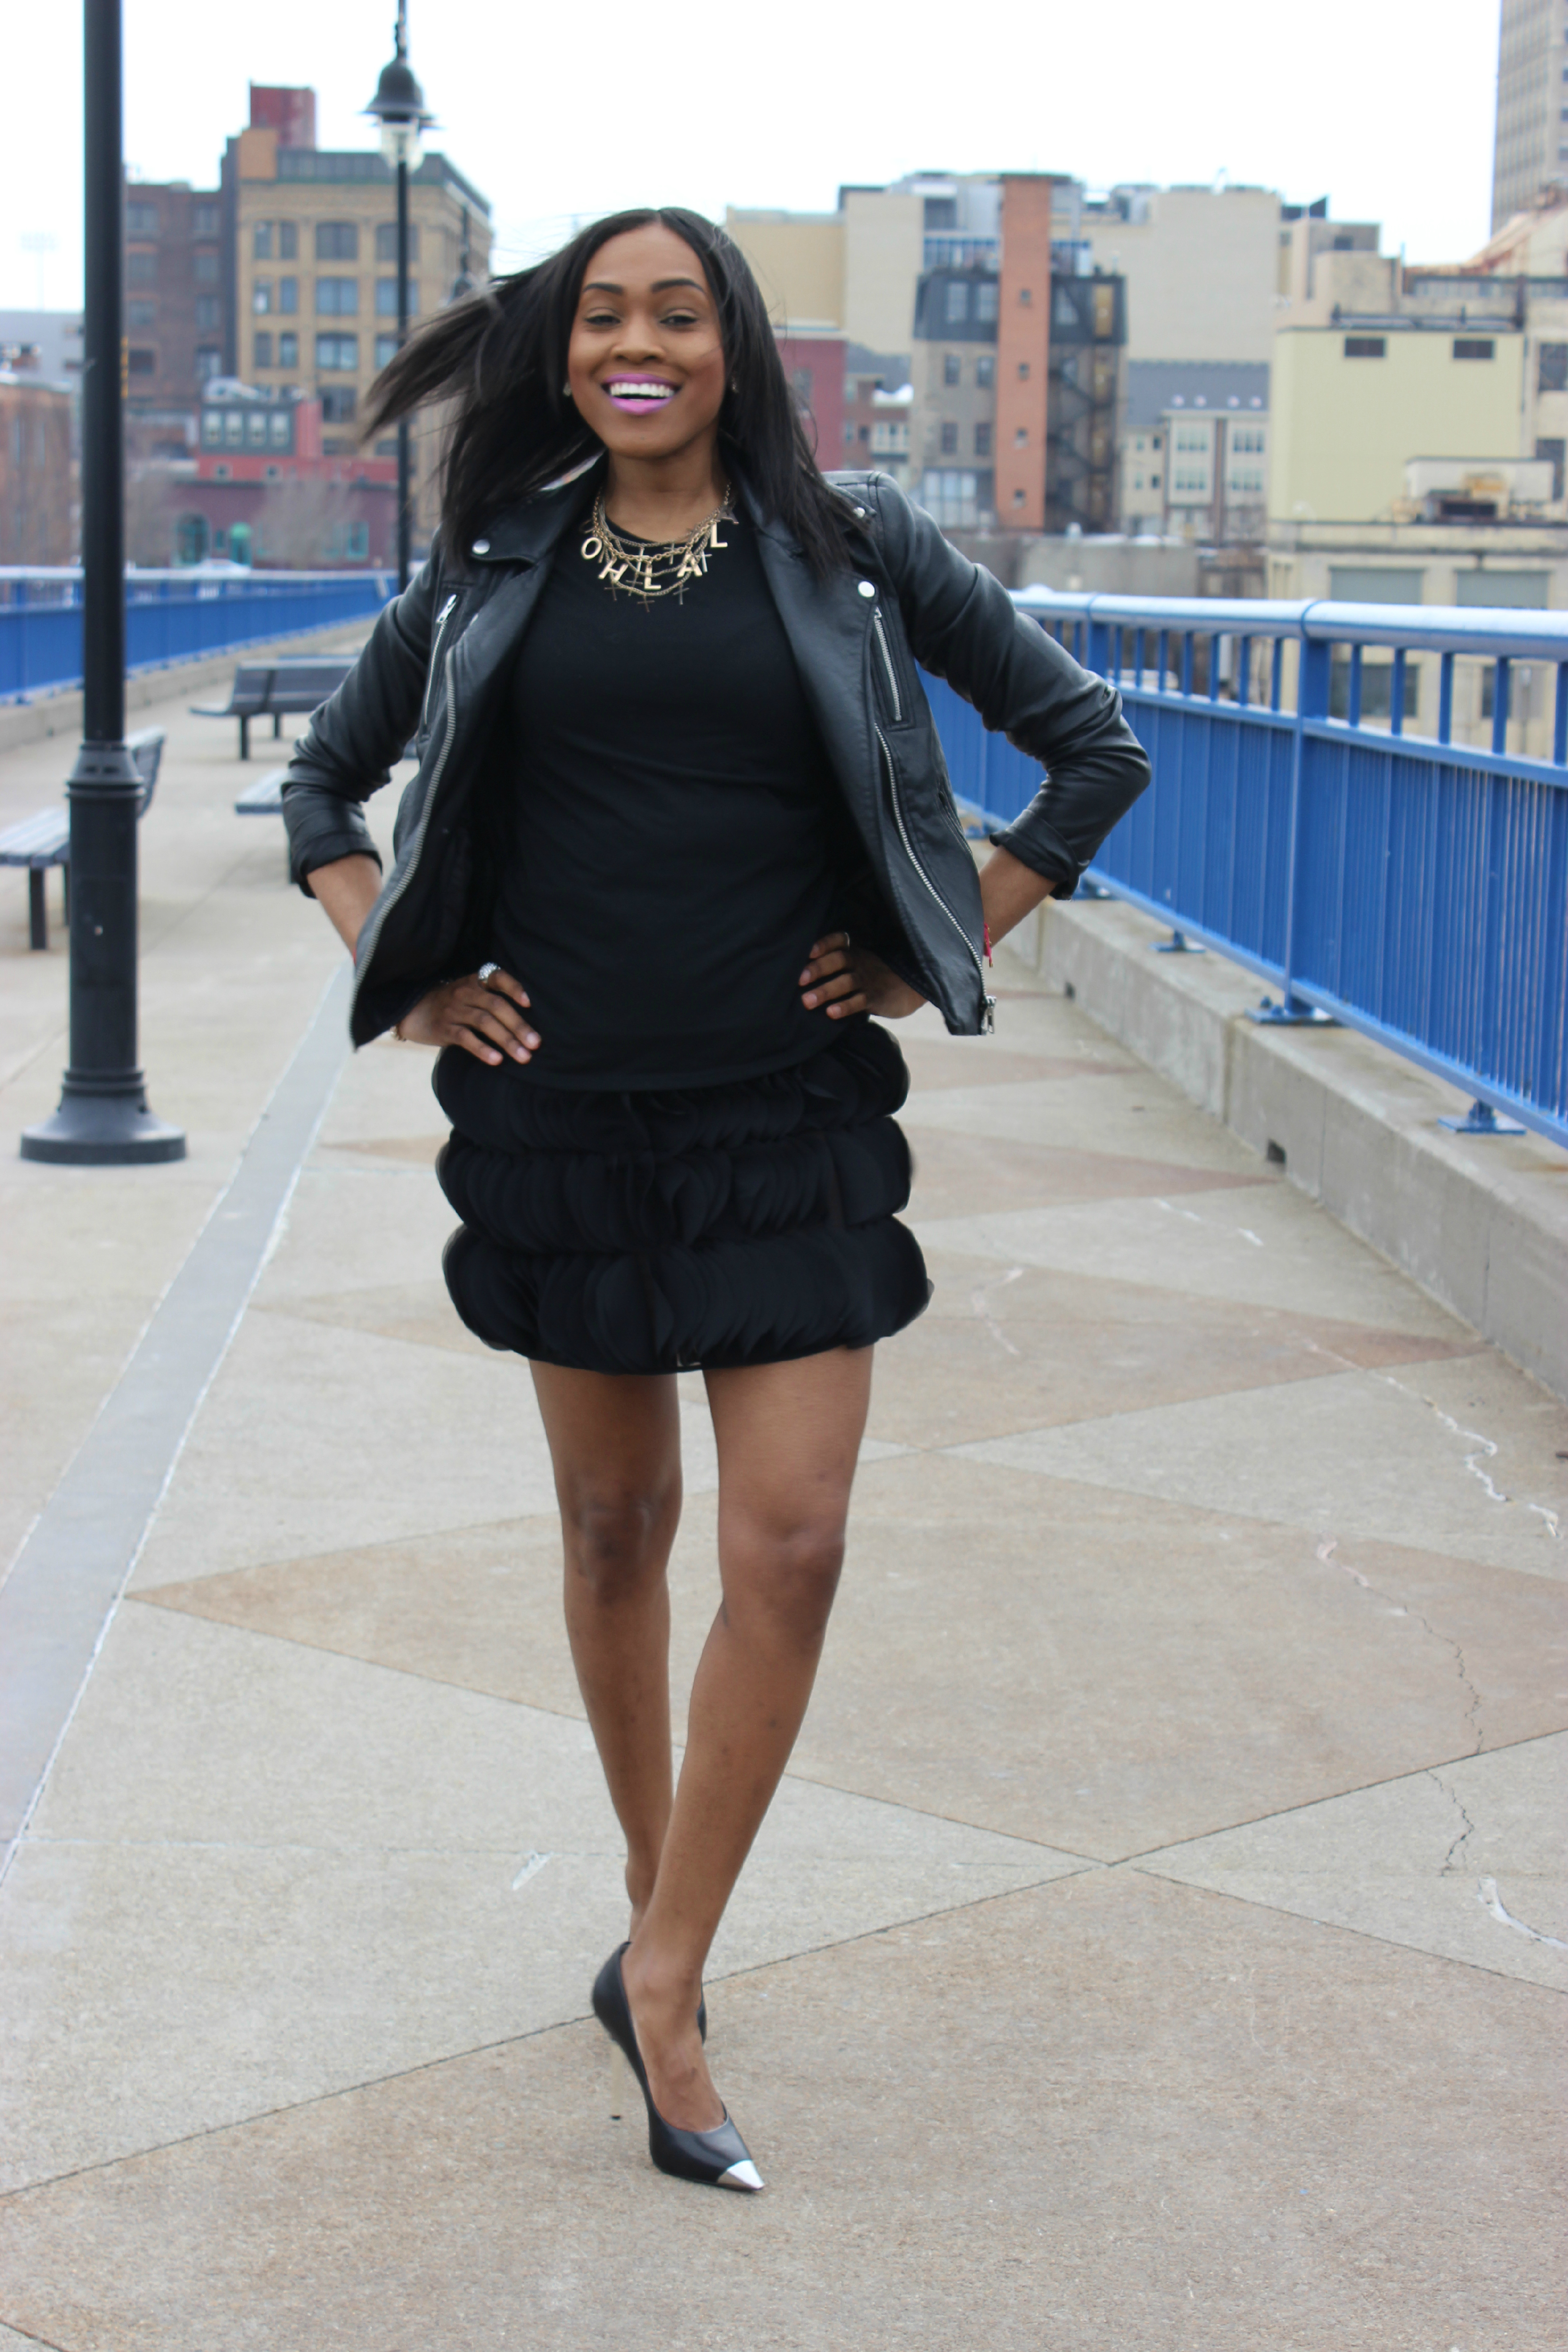 Style-files-Pretty-Price-Black -Moto-Jacket-Michael Kors-Silve-heel-PumPs-Thrifted-Skirt-Oohlalablog-17